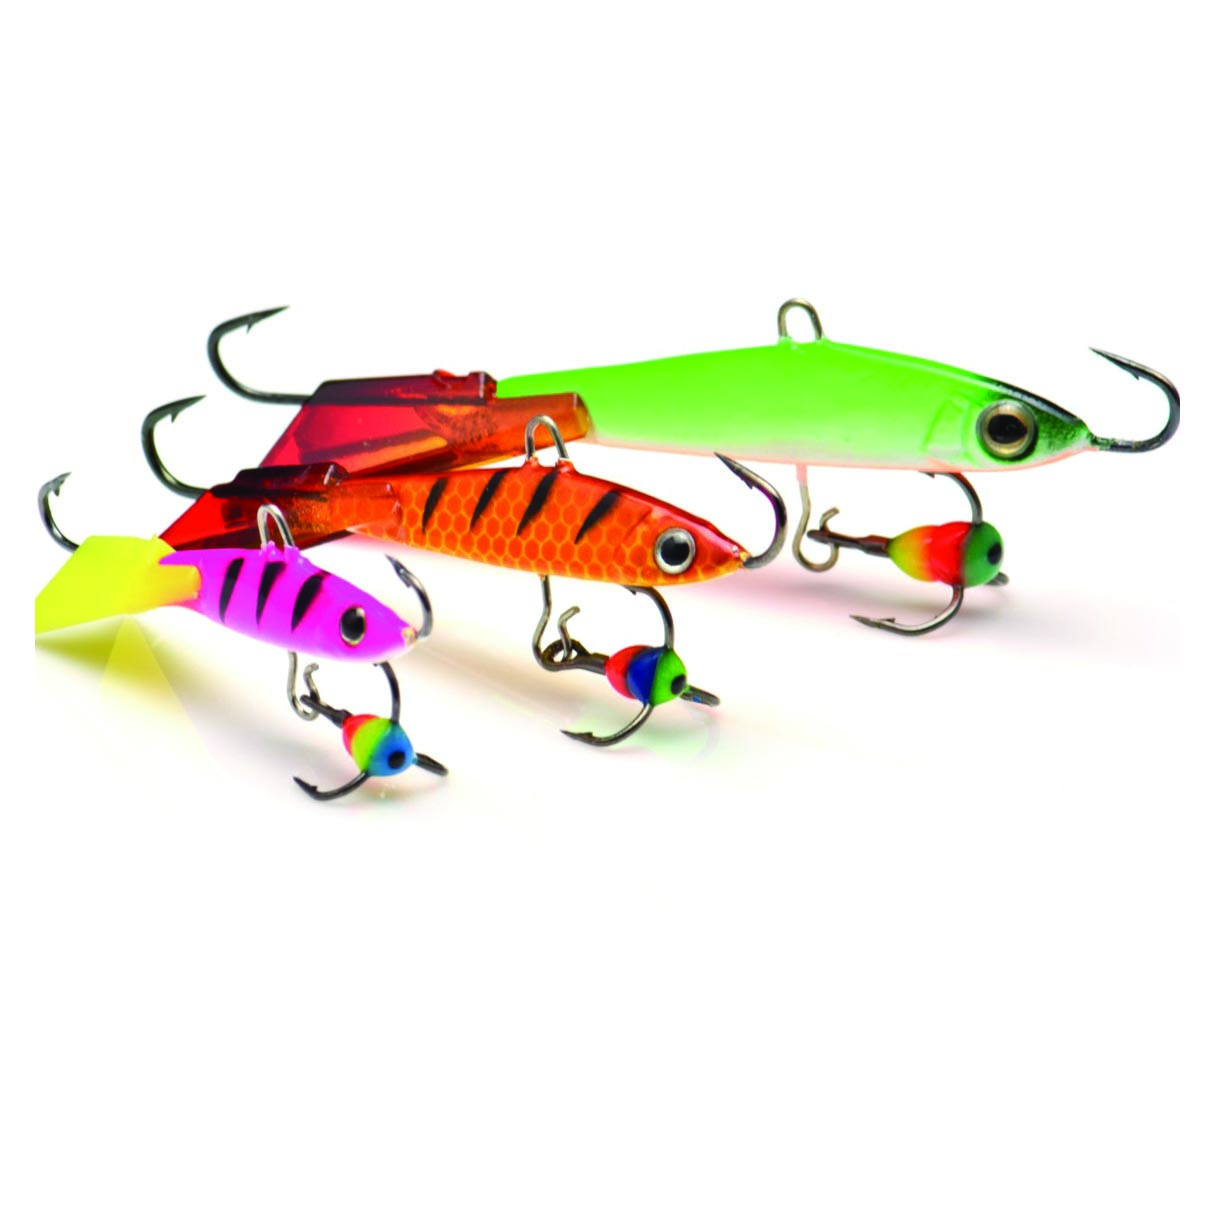 Ice fishing jig,swimming lures for walleye